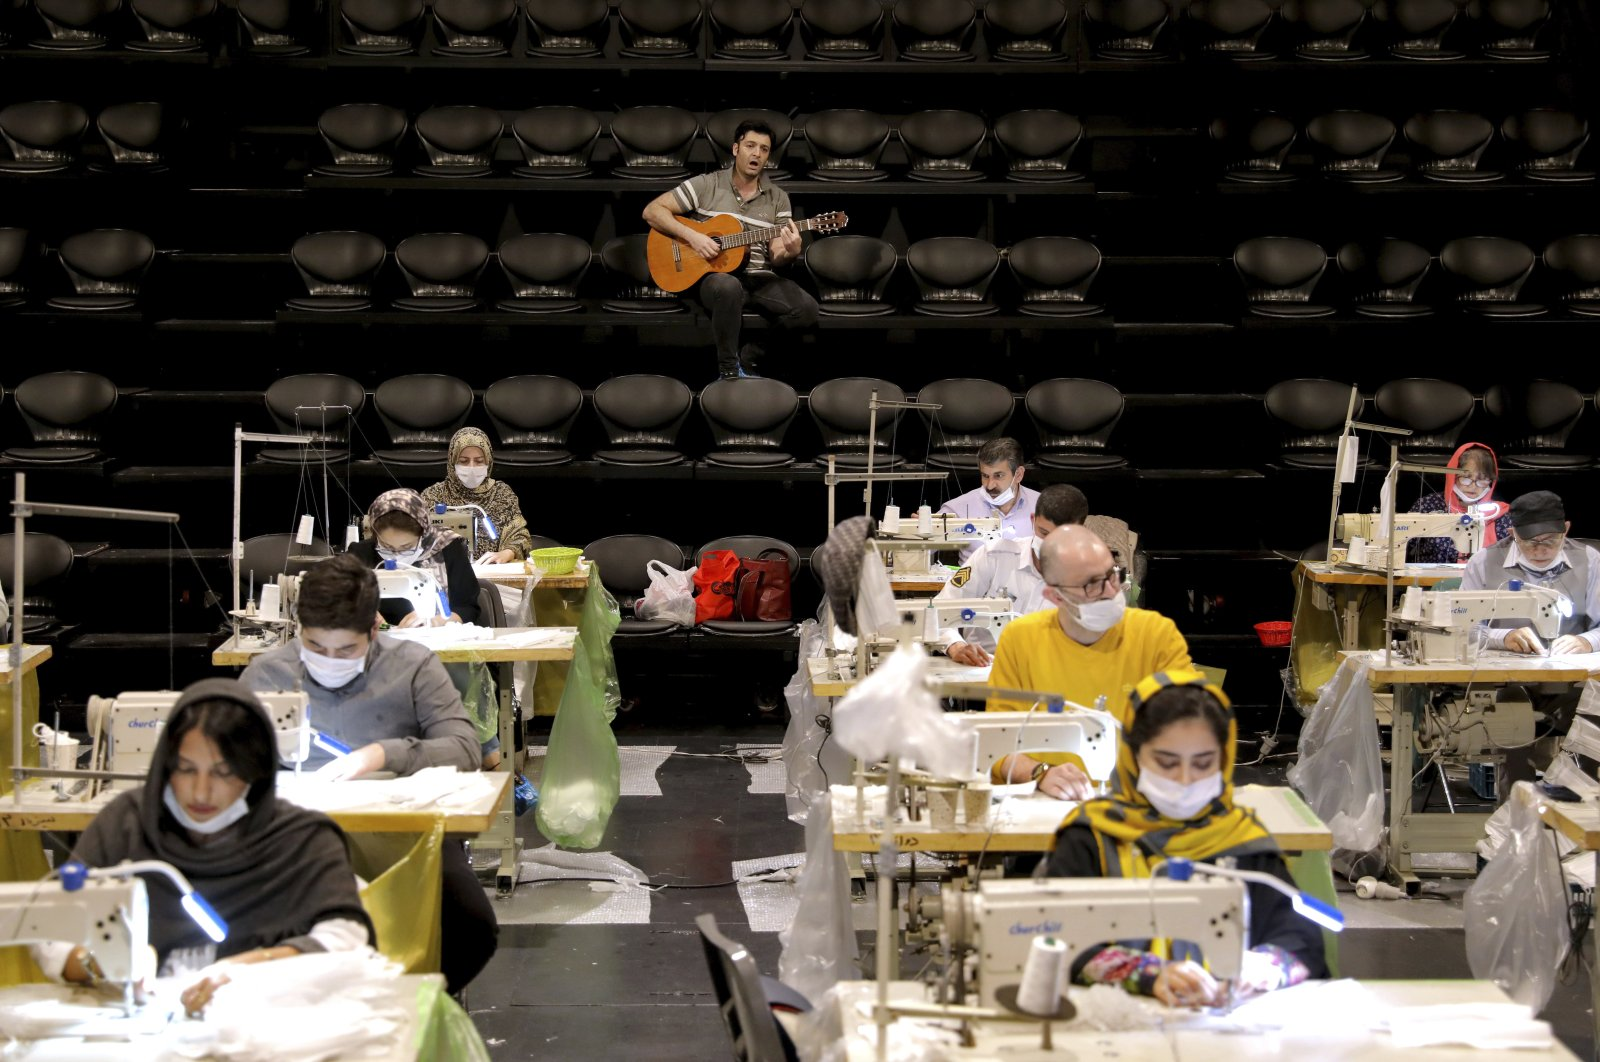 Volunteers wearing face masks to curb the spread of the new coronavirus, sew face masks, as a guitarist plays for volunteers, at the Hafez theatre hall in downtown Tehran, Iran, April 15, 2020. (AP Photo)